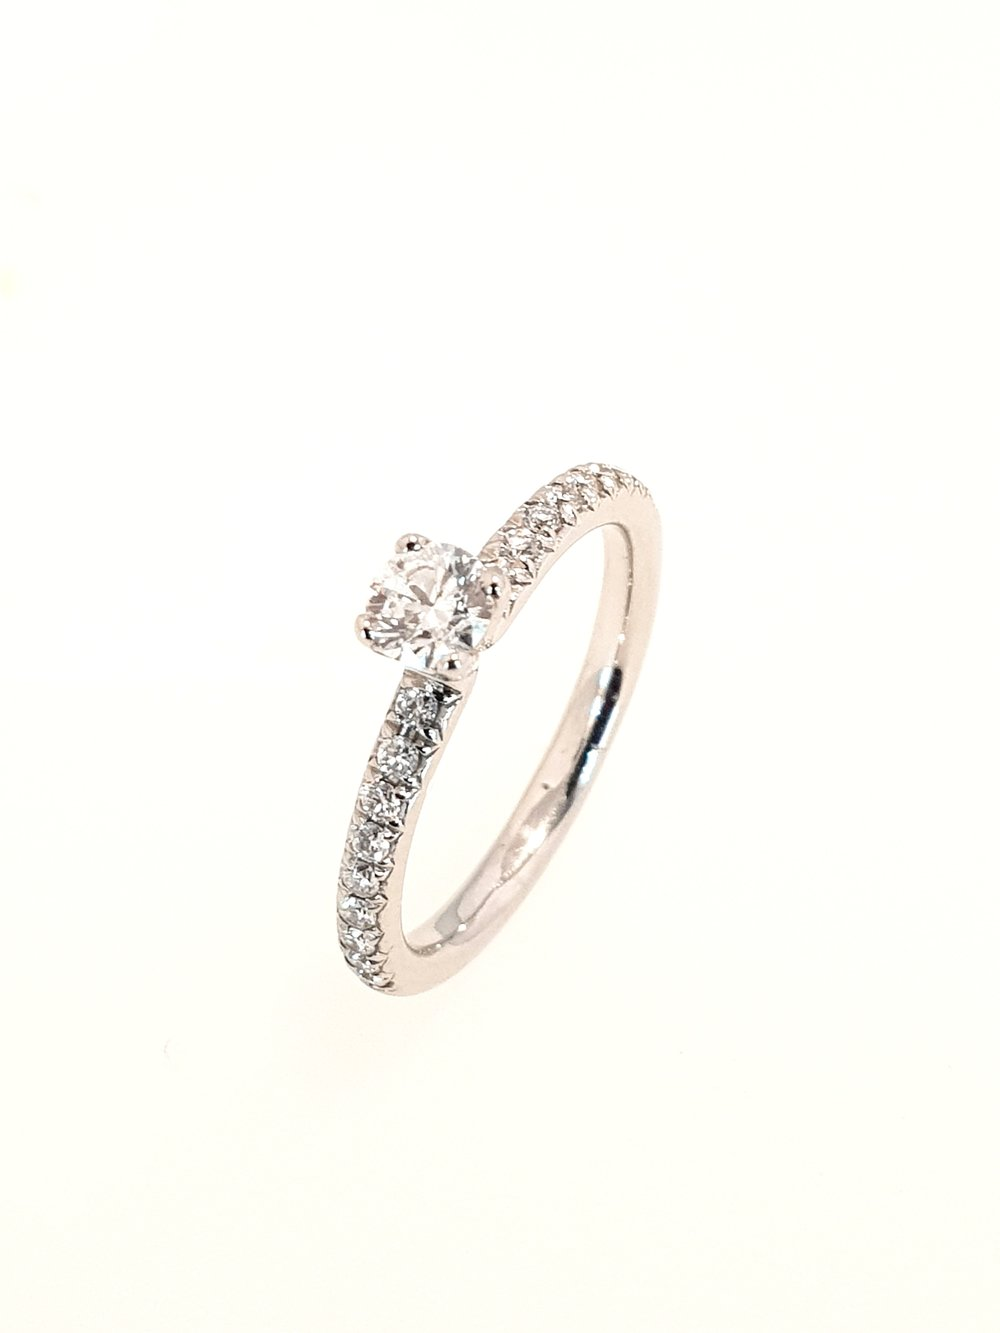 Platinum Diamond Ring  .41ct, G, Si1  Stock Code: N8743  £1560